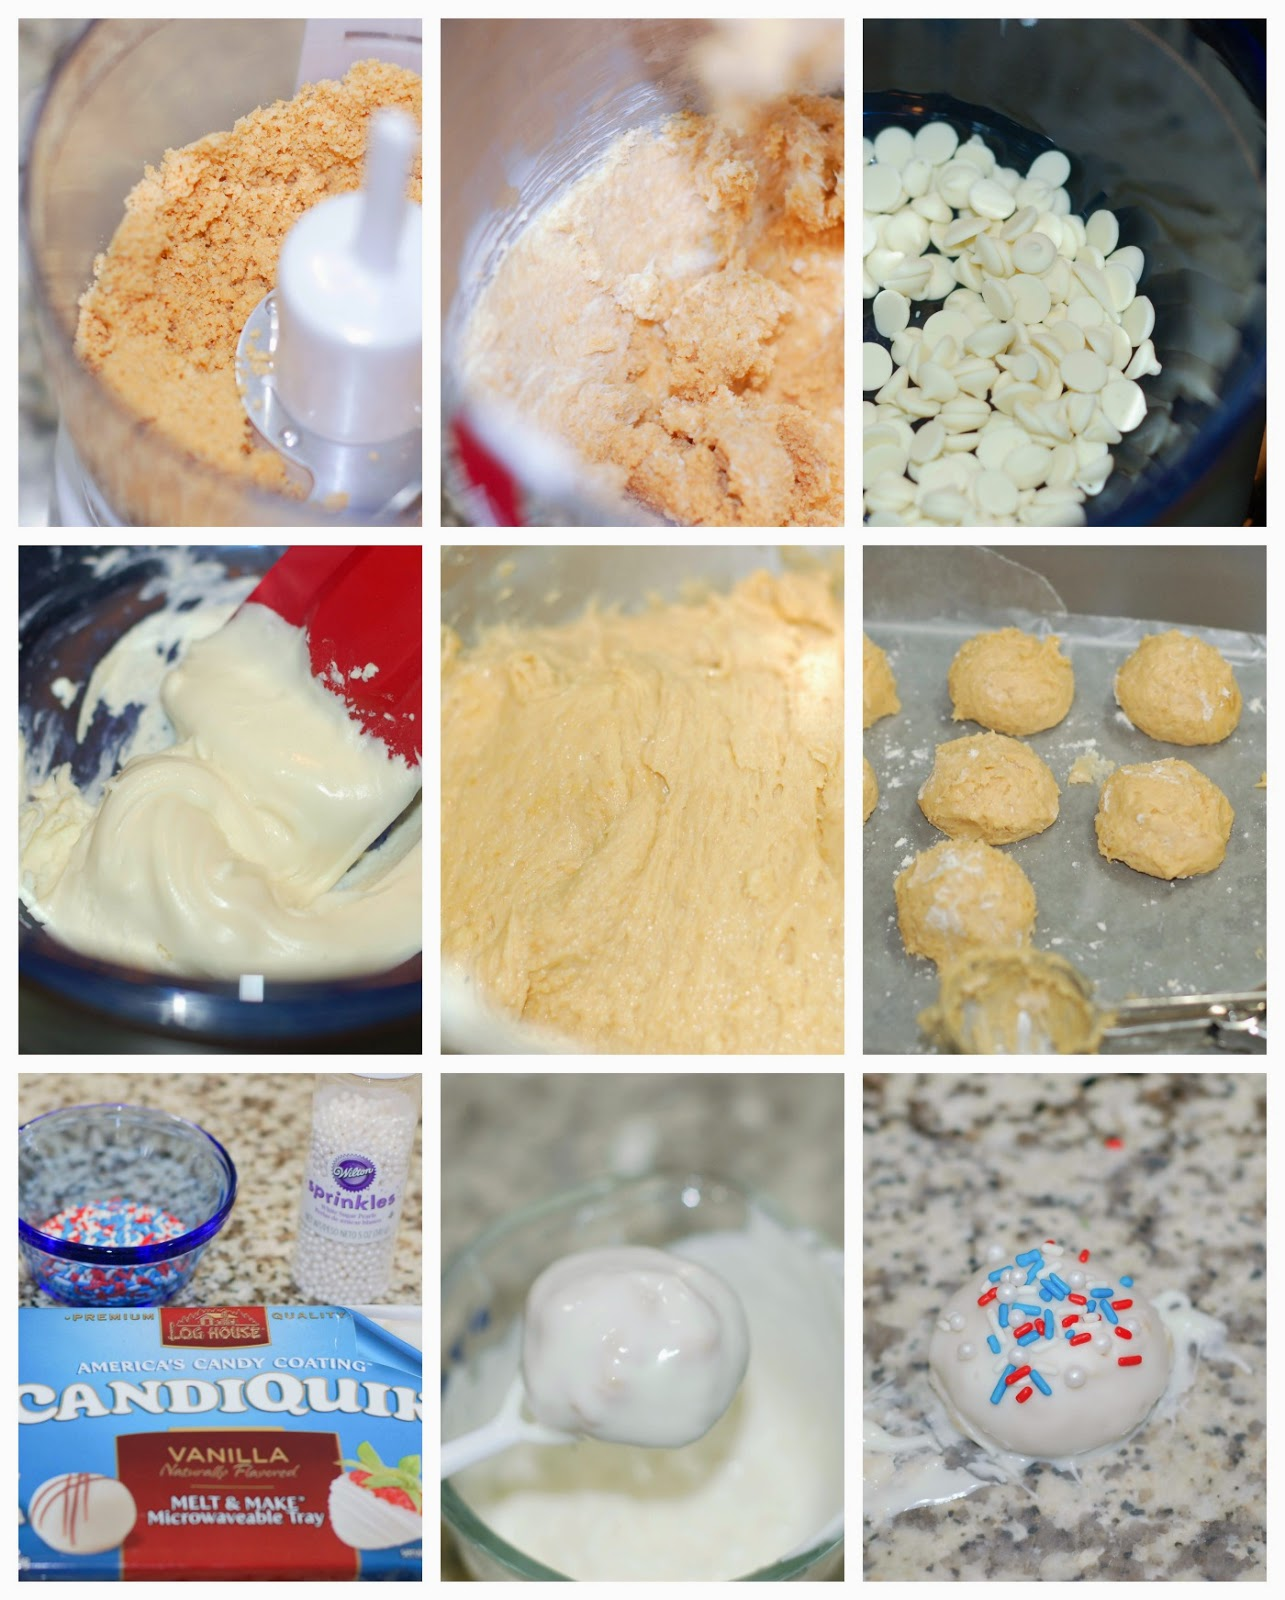 Making Lemon Oreo Truffles by The Sweet Chick